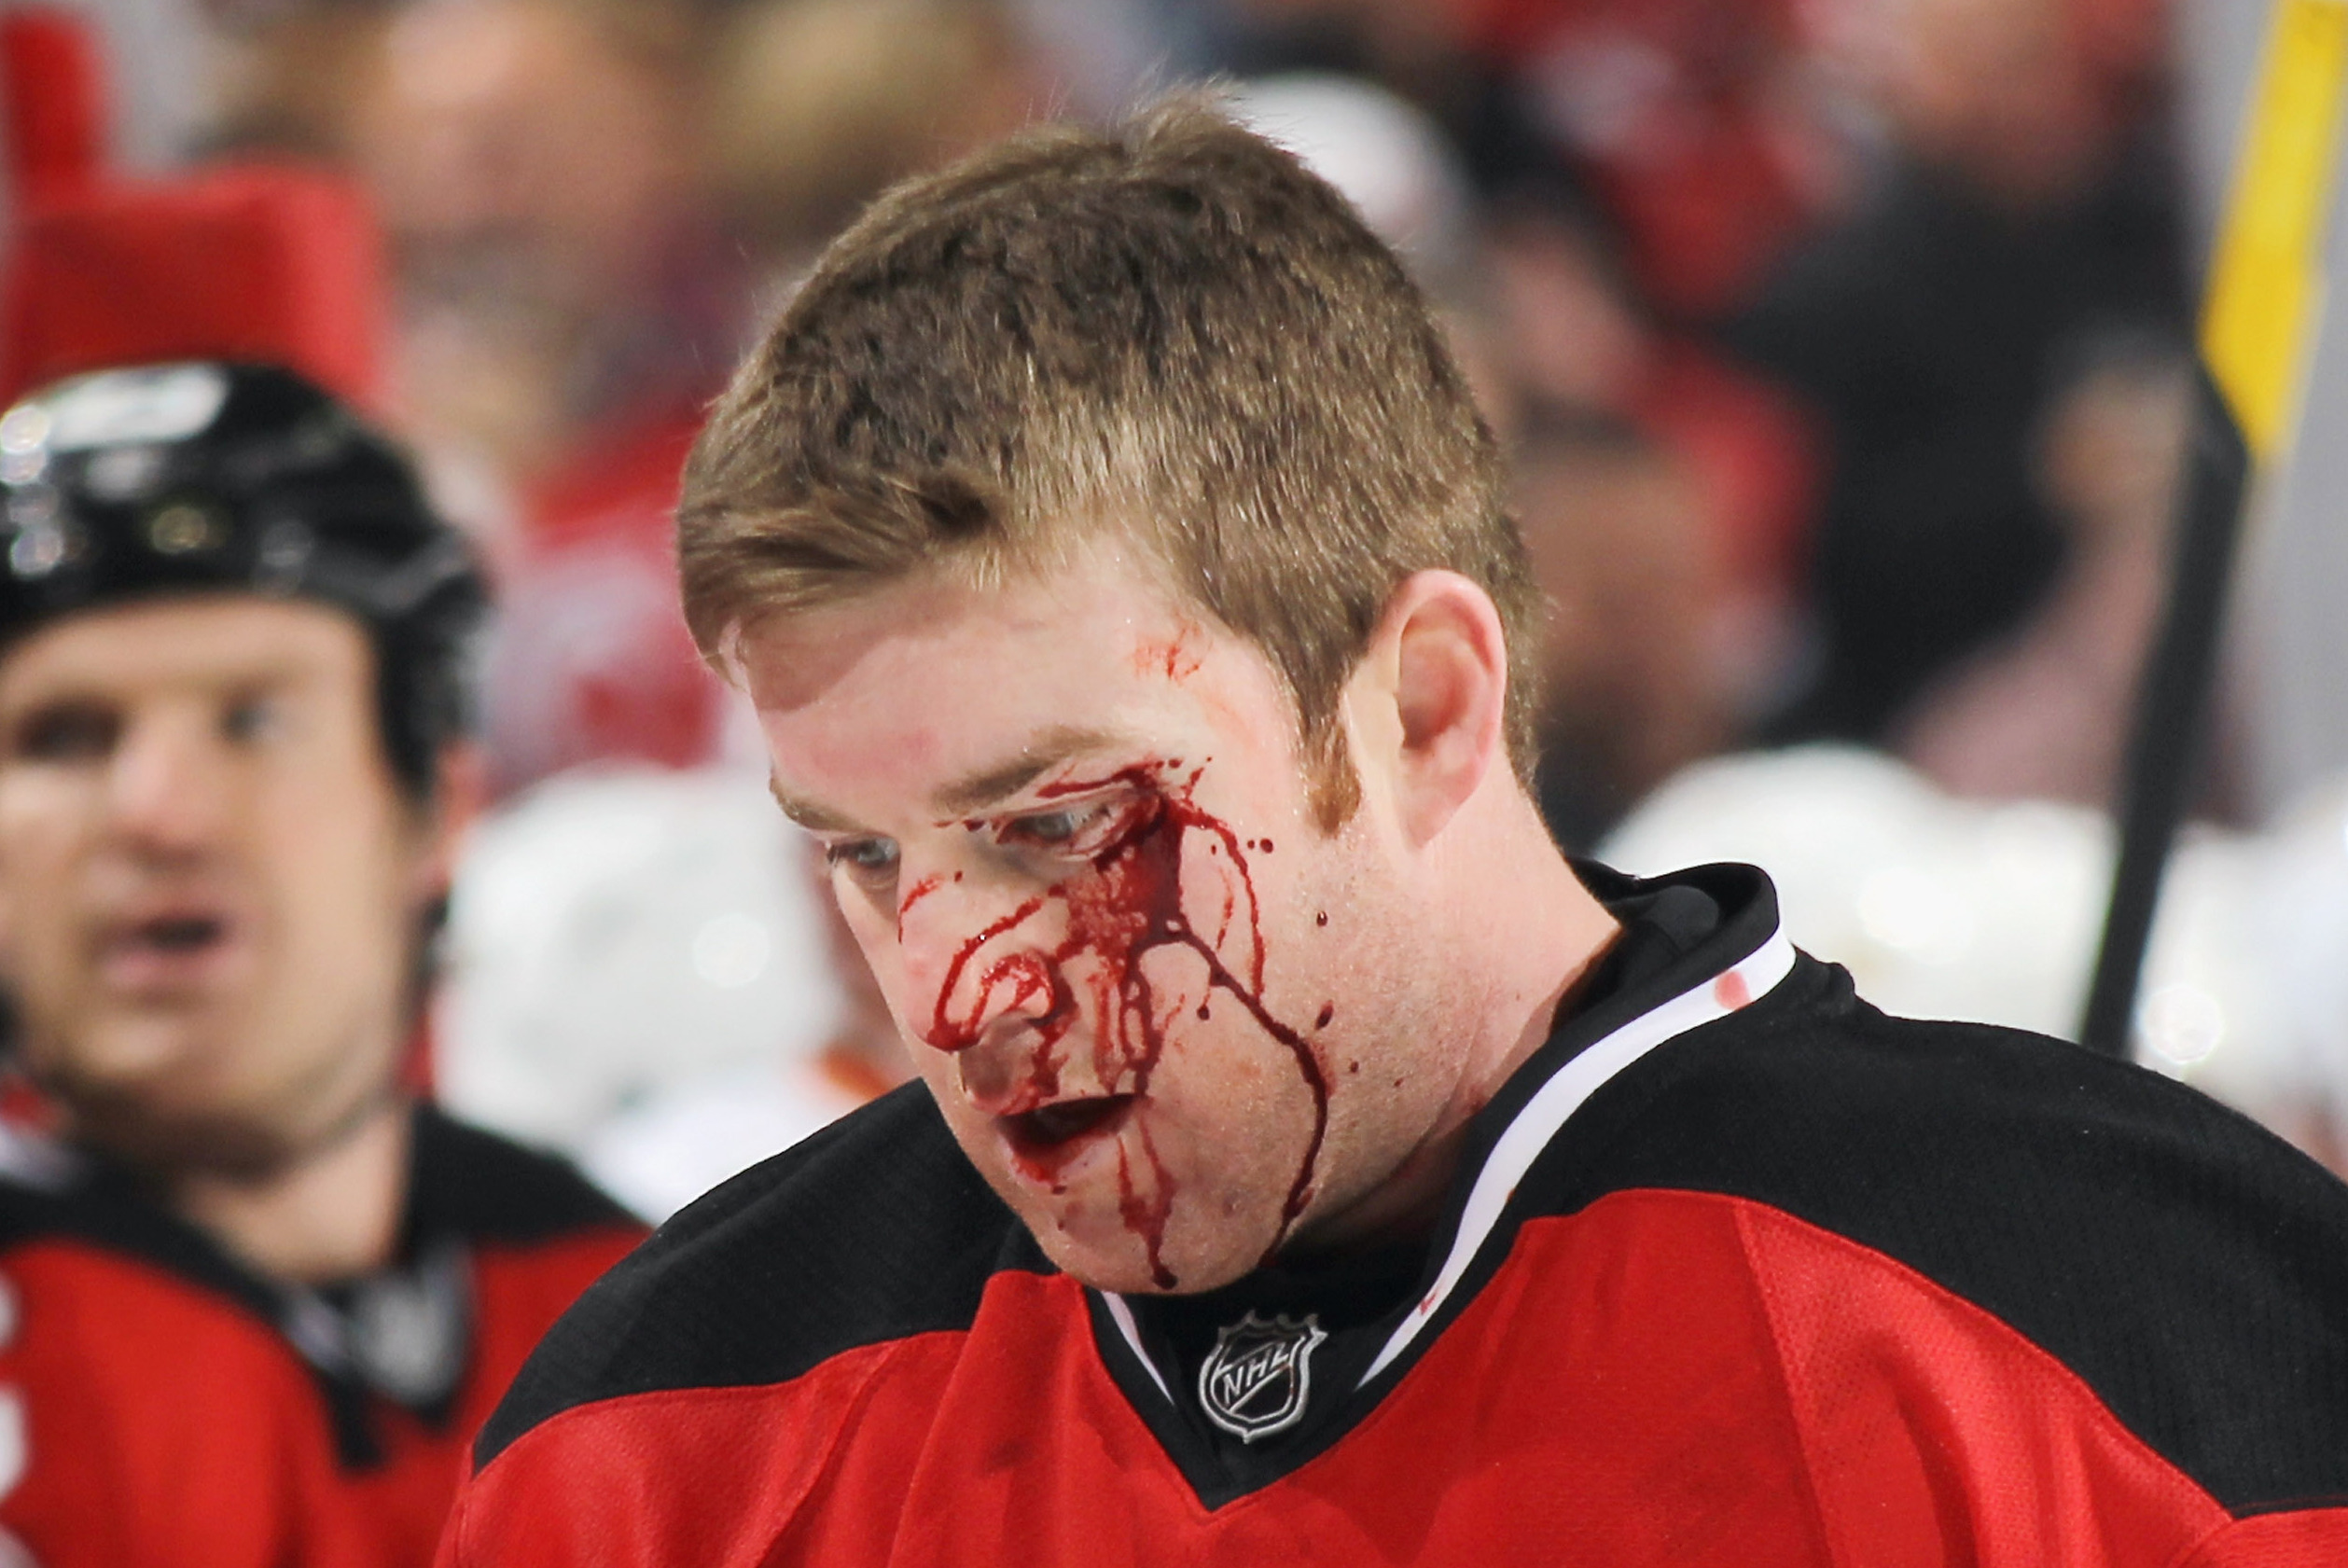 NHL: The 50 Most Gruesome Injuries in Hockey History